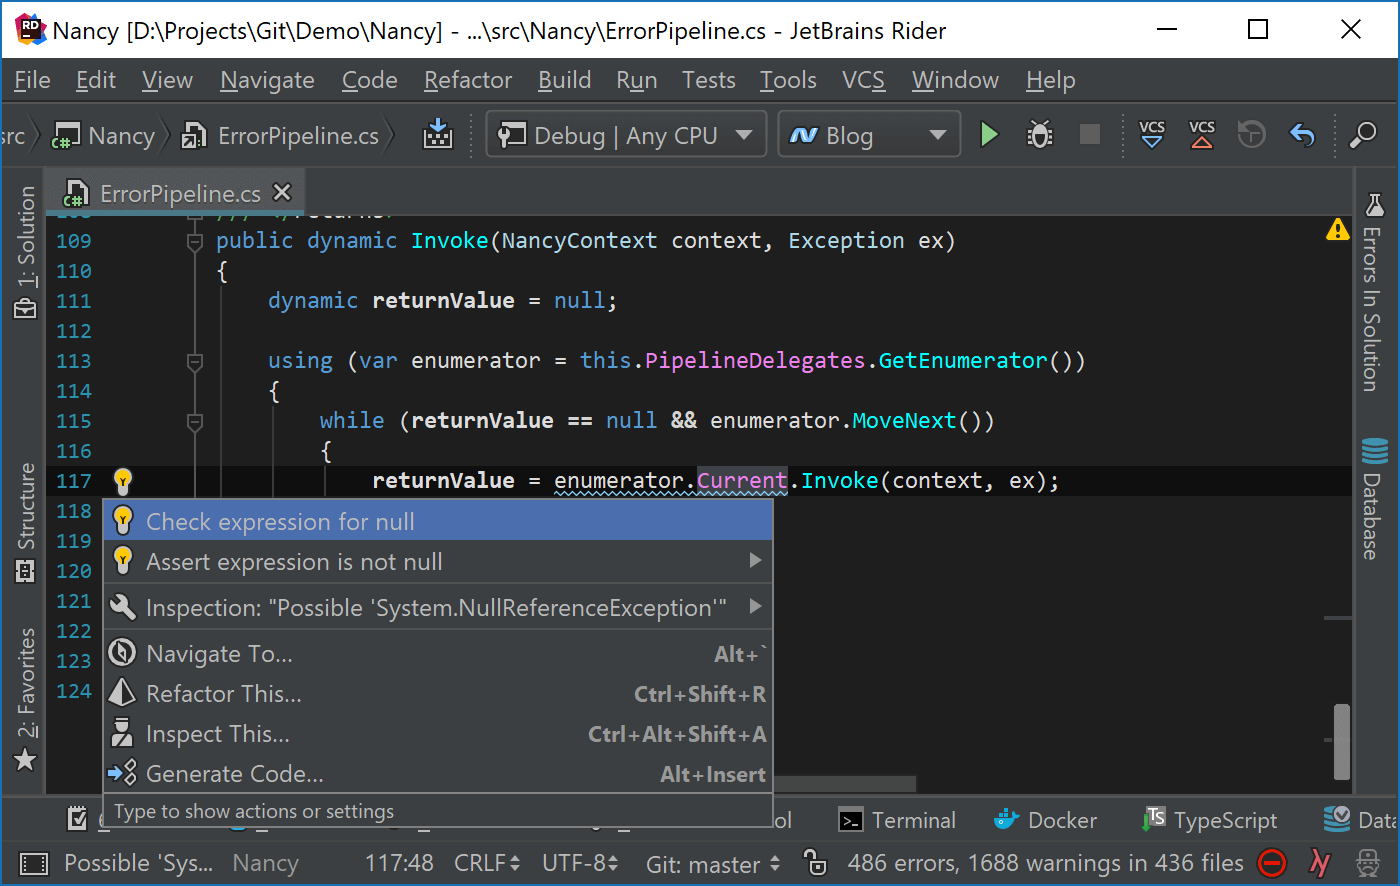 getting started with jetbrains rider - a cross-platform ide for